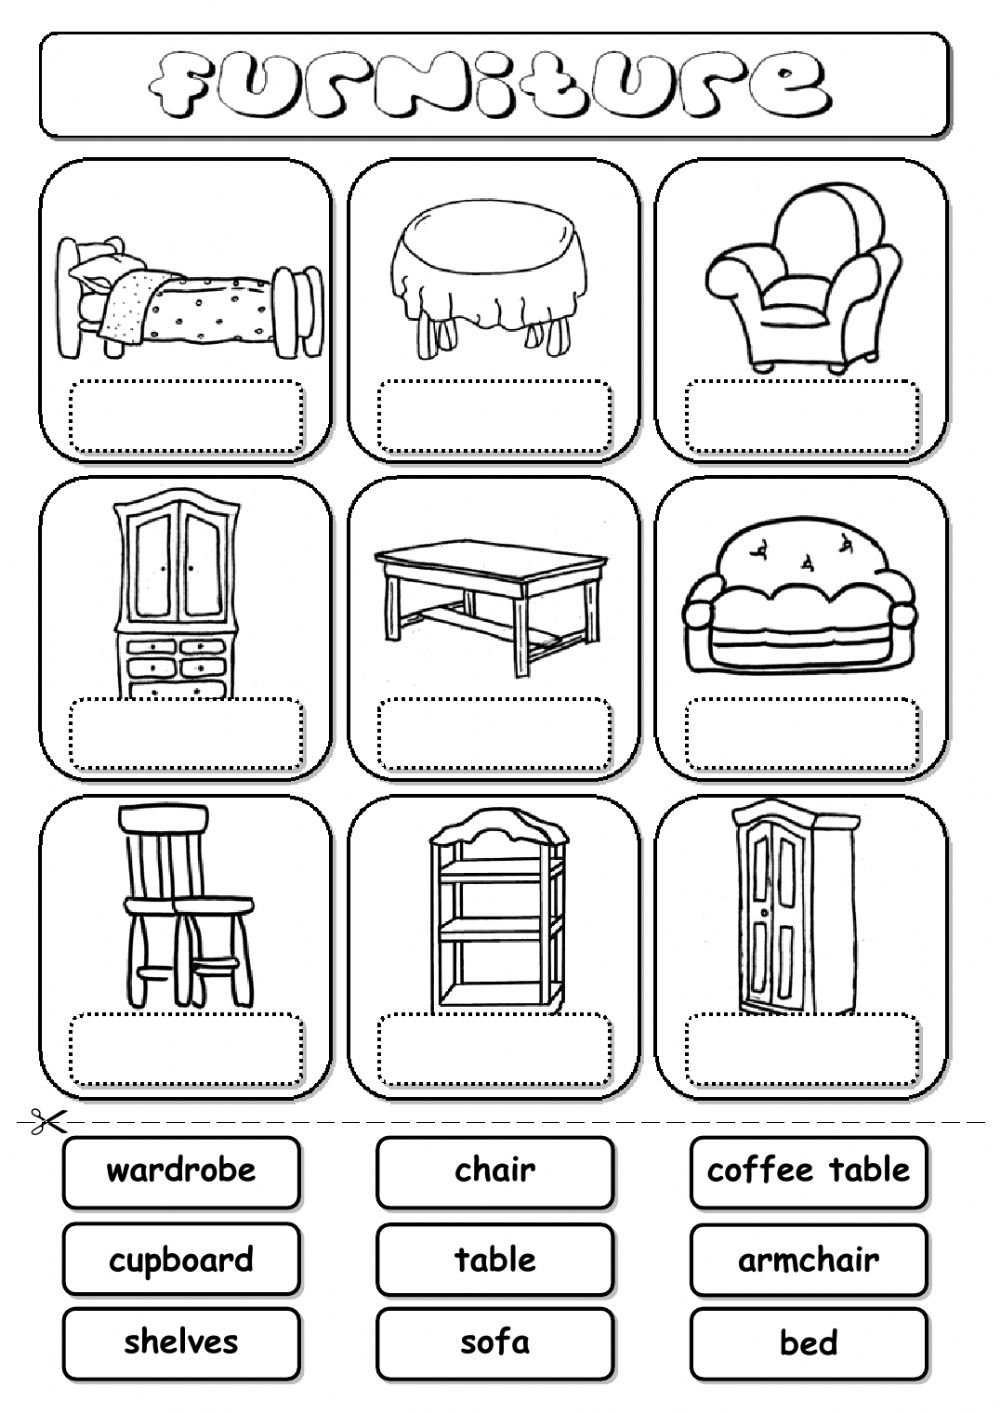 Printable Worksheets Home : Furniture drag and drop interactive worksheet